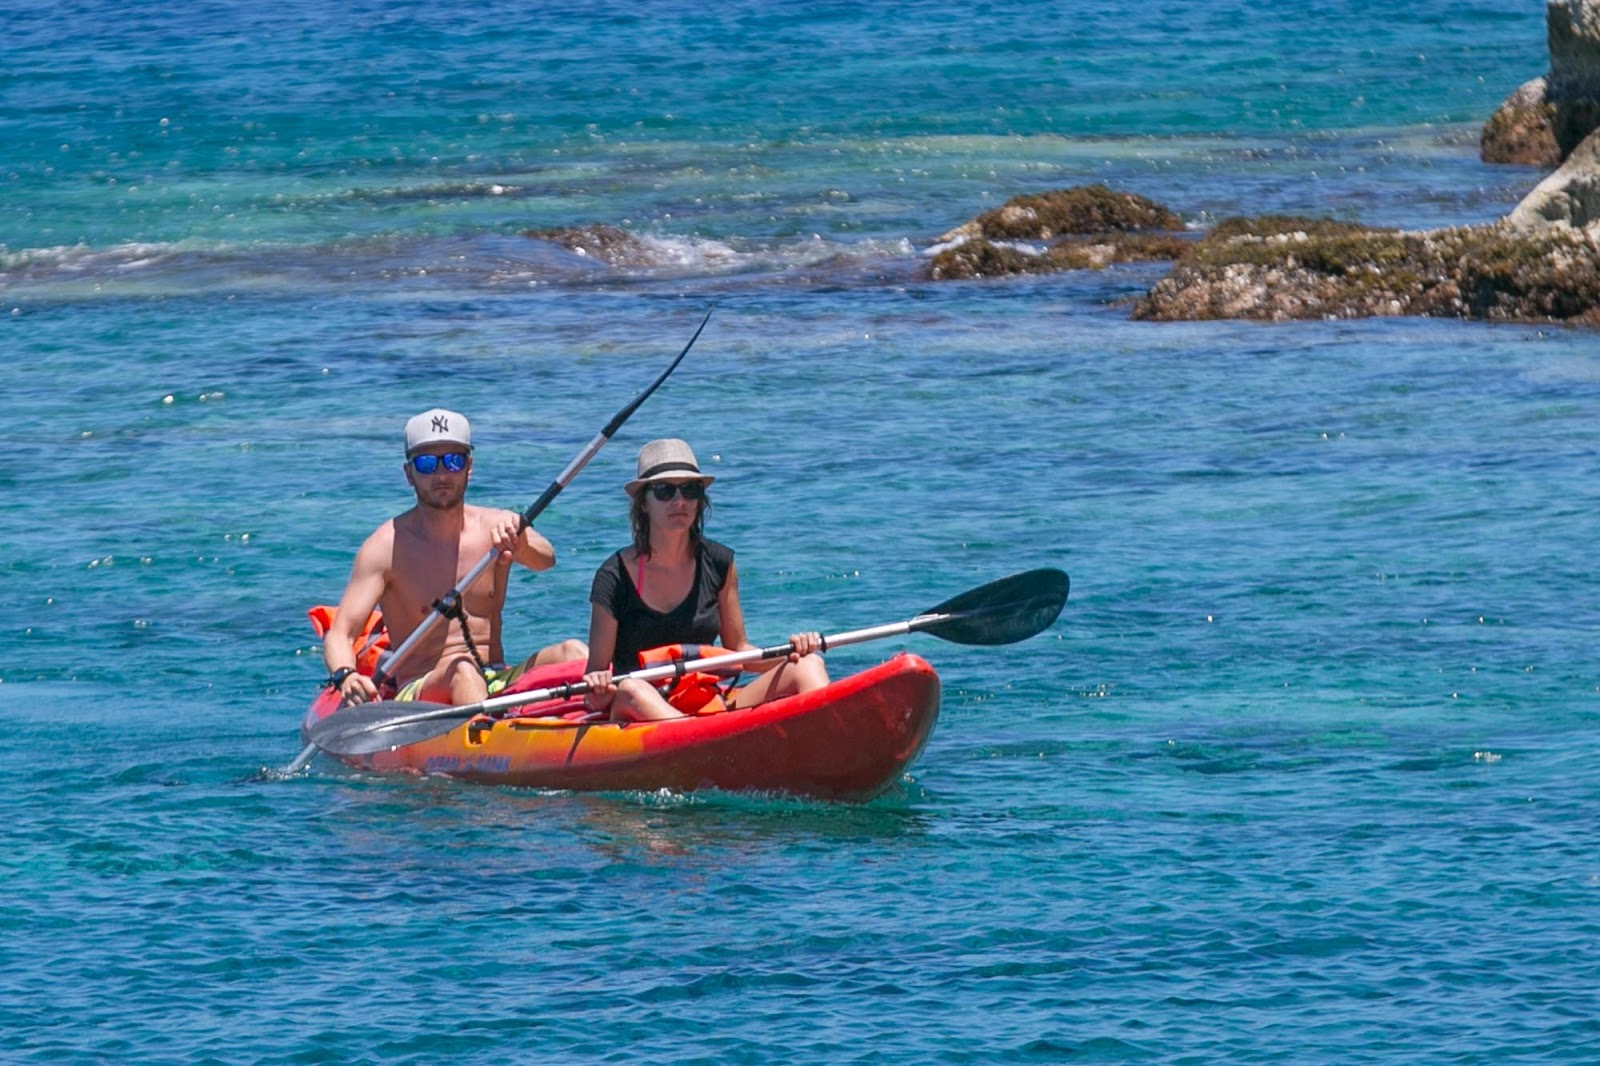 Kayakers in Iles des Saintes, Guadeloupe